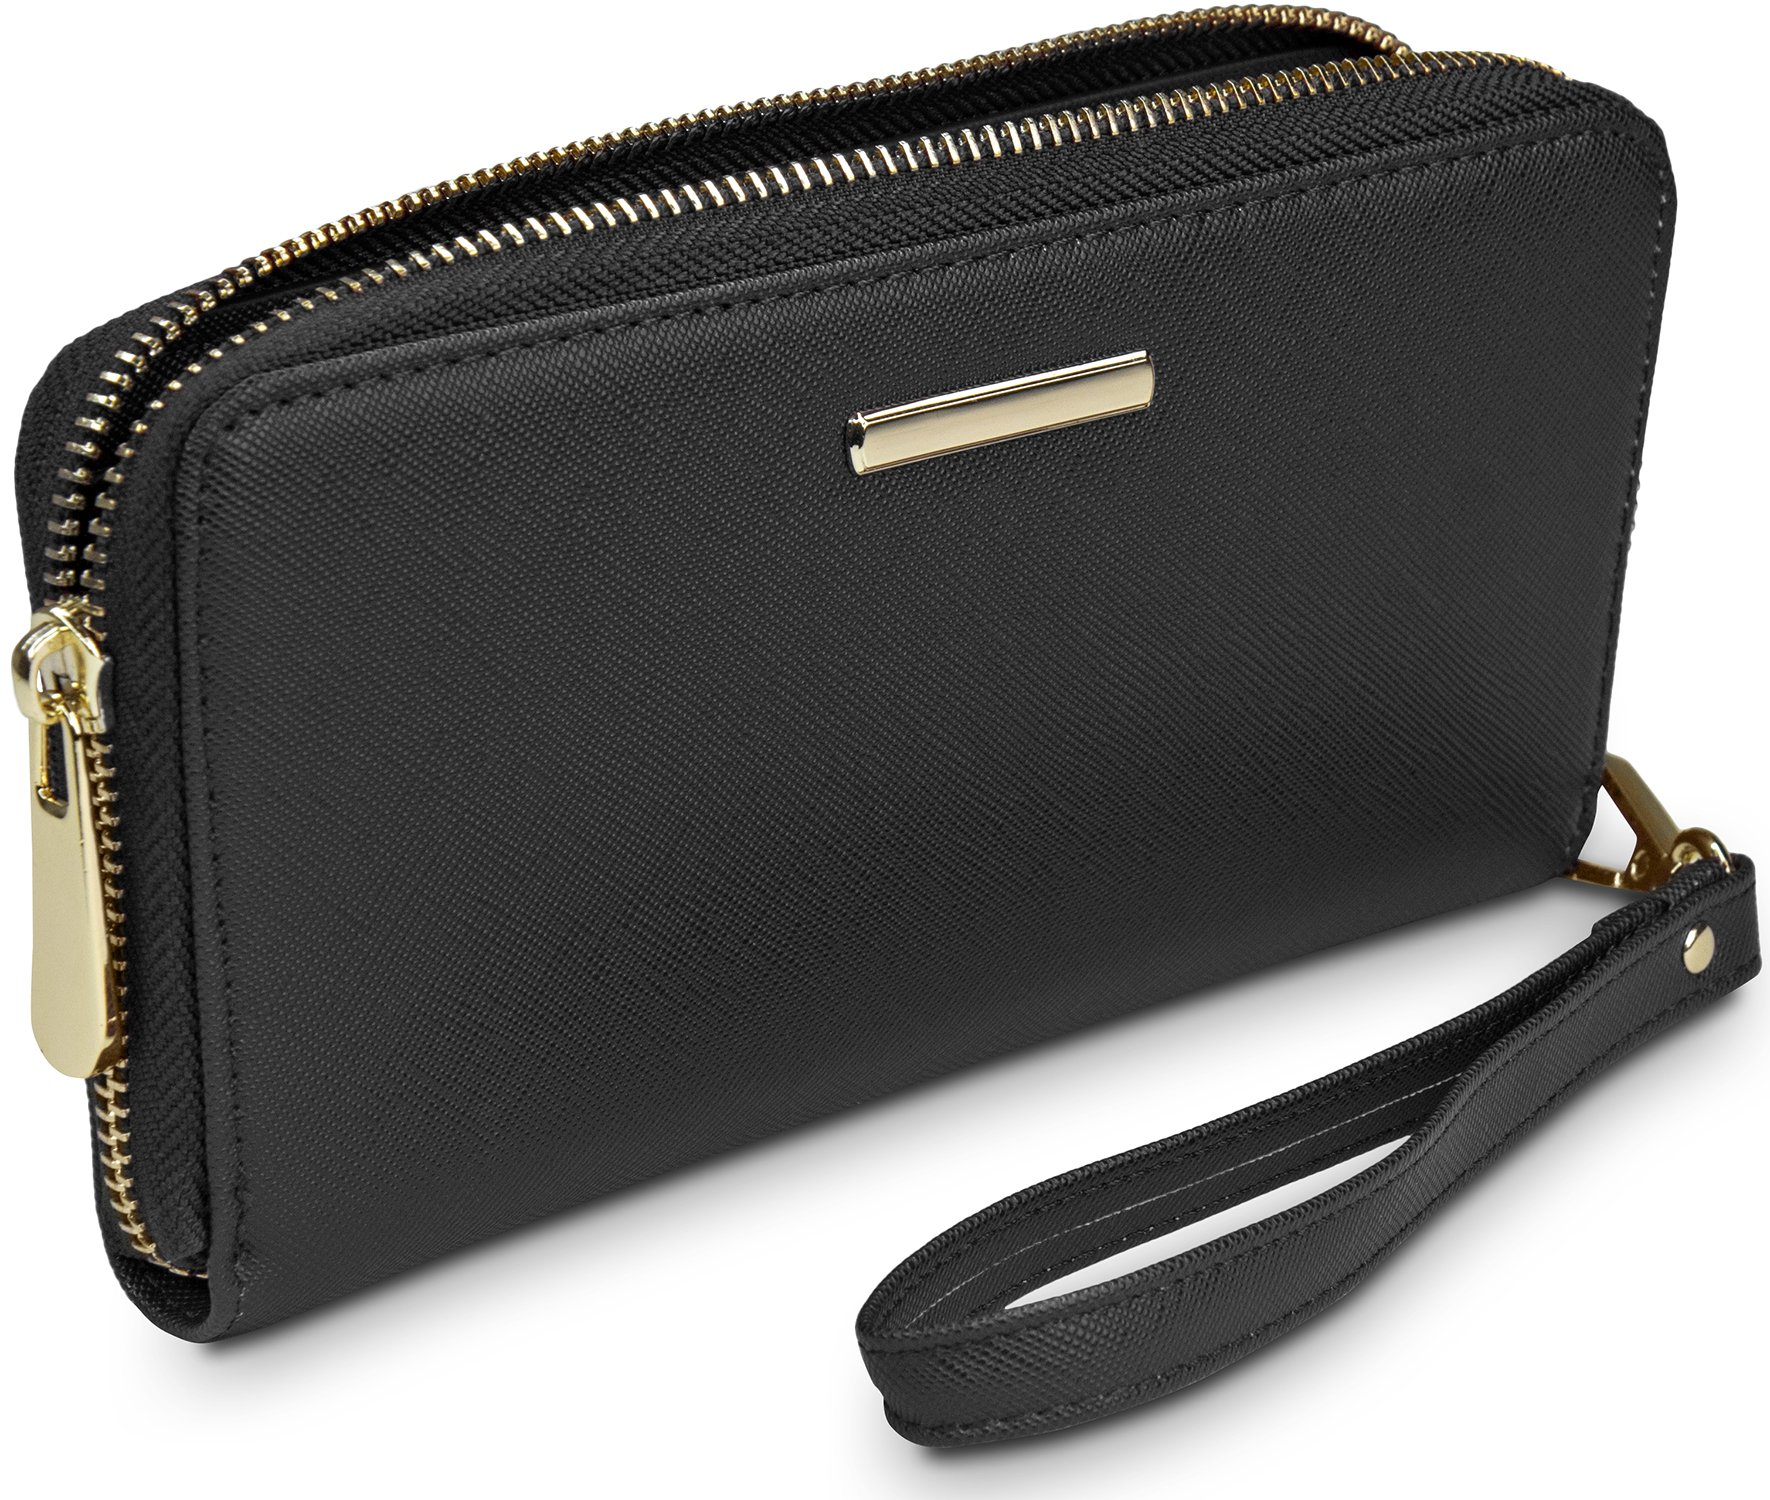 968b9f1b9ffbb Travando® Ladies  Purse with RFID Protection Paris - Large Designer Purse -  12 Card Pockets - 3 Chambers - Continental Format - Golden Zip - Perfect  Gift ...